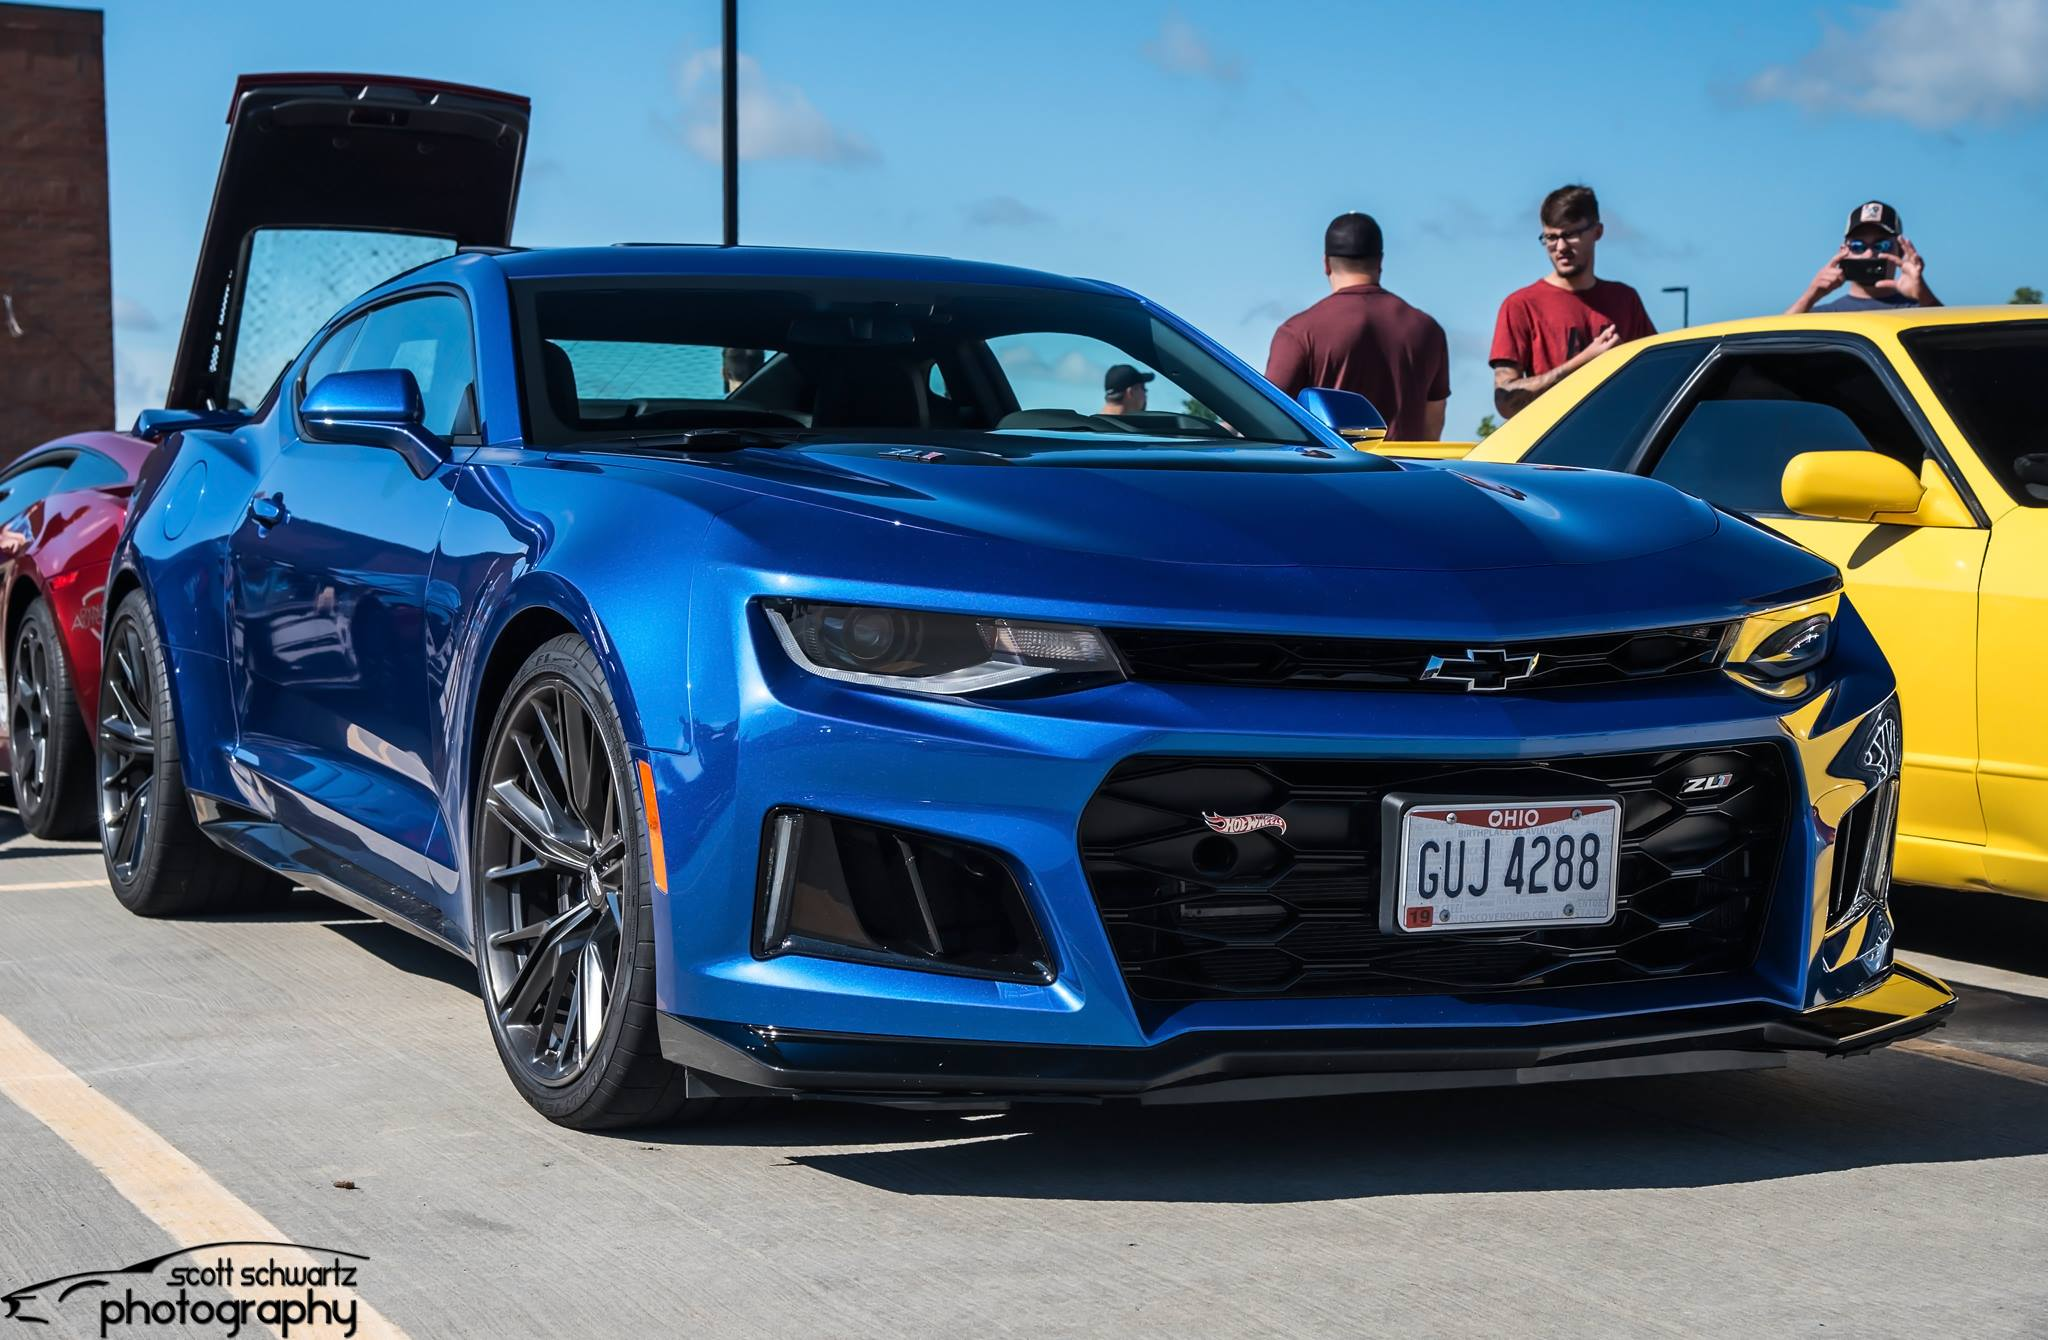 photo: Scott Schwartz Photography  Also in attendance was this ZL1 Hot Wheels Edition.